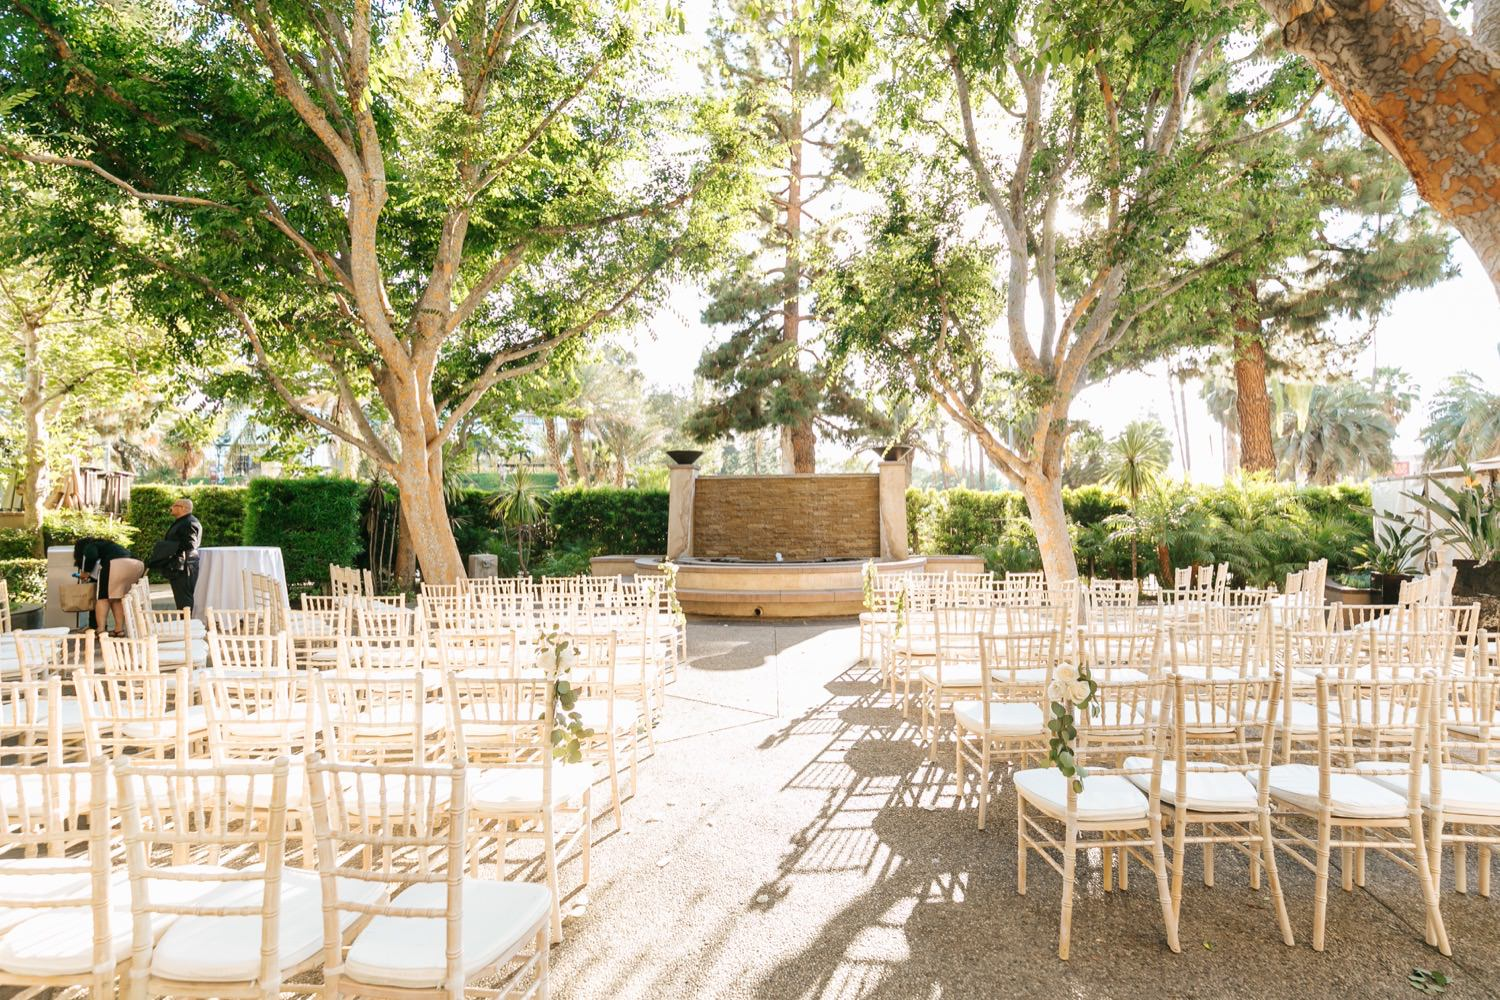 Los Angeles Wedding Ceremony Decor - Wedding Decor Inspiration - https://brittneyhannonphotography.com